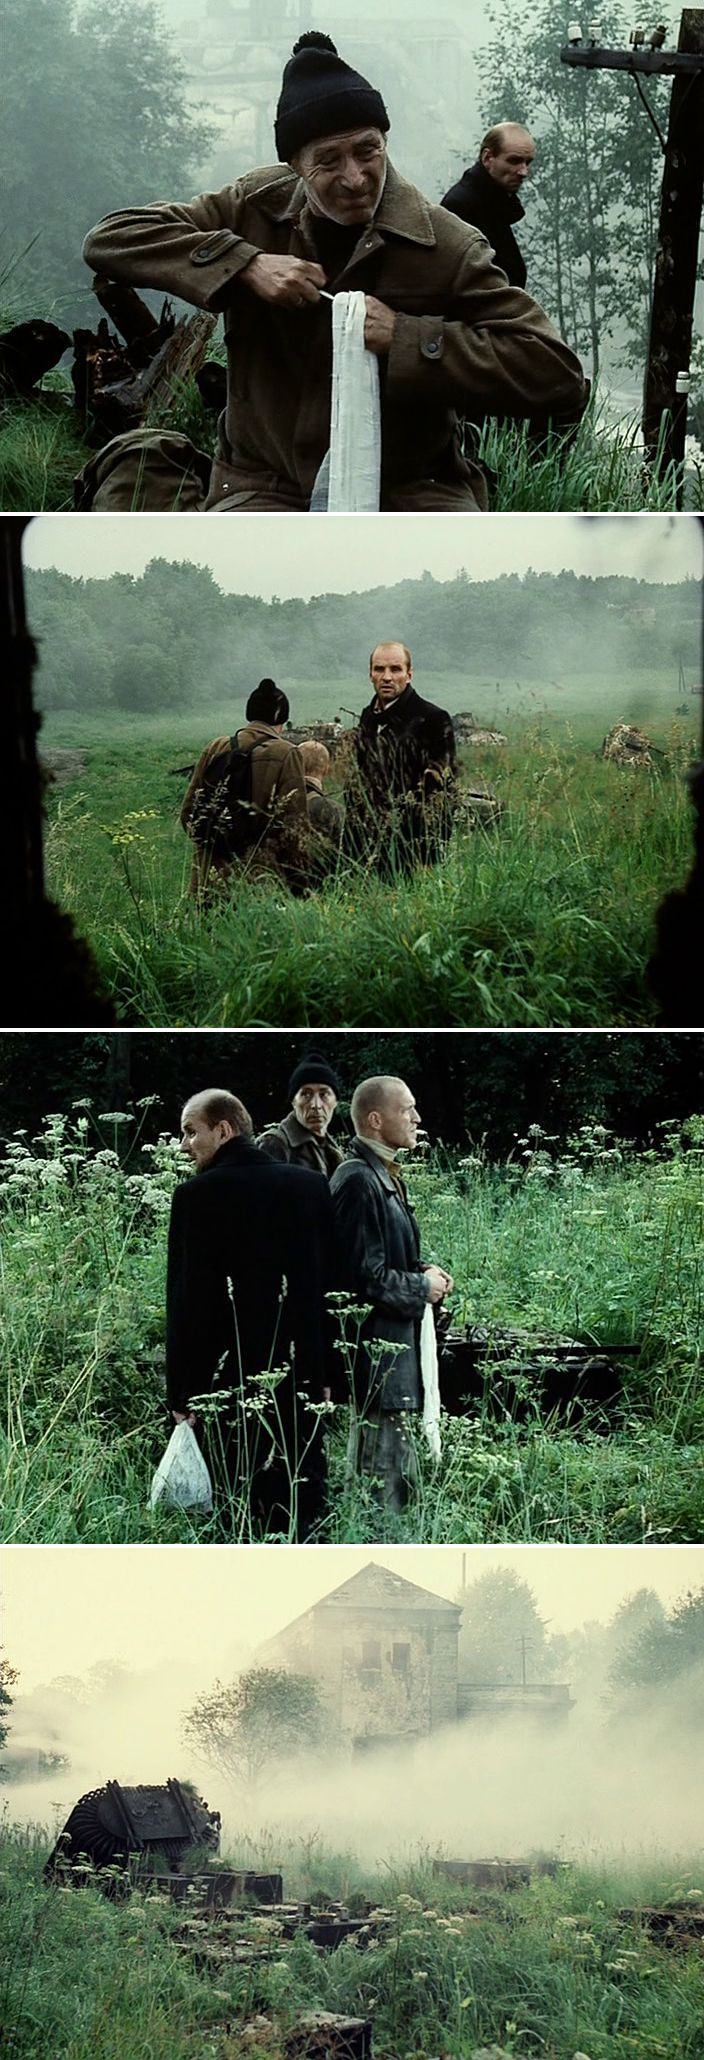 Famous Movie Quotes Stalker 1979 Directed By Andrei Tarkovsky